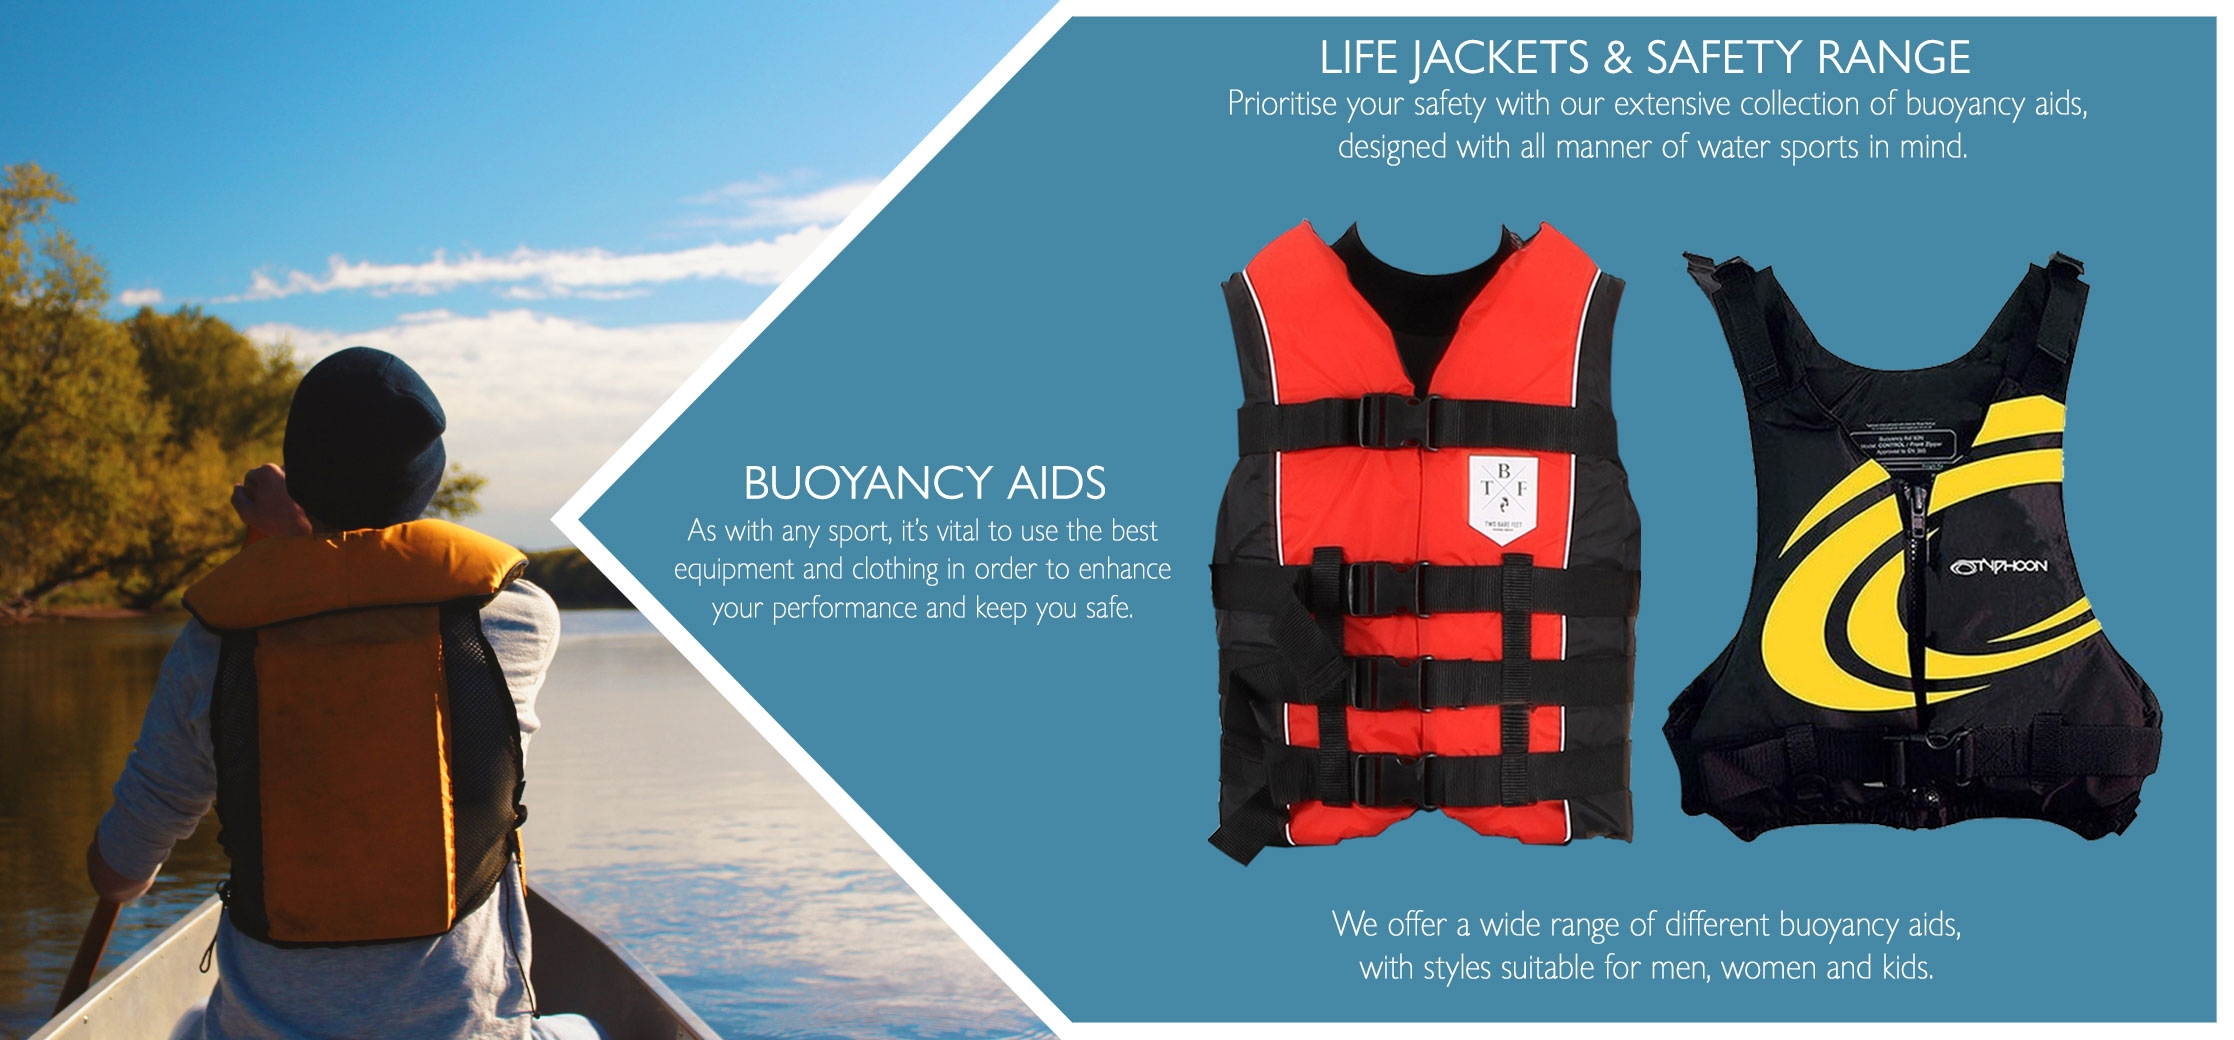 Life jackets and safety information